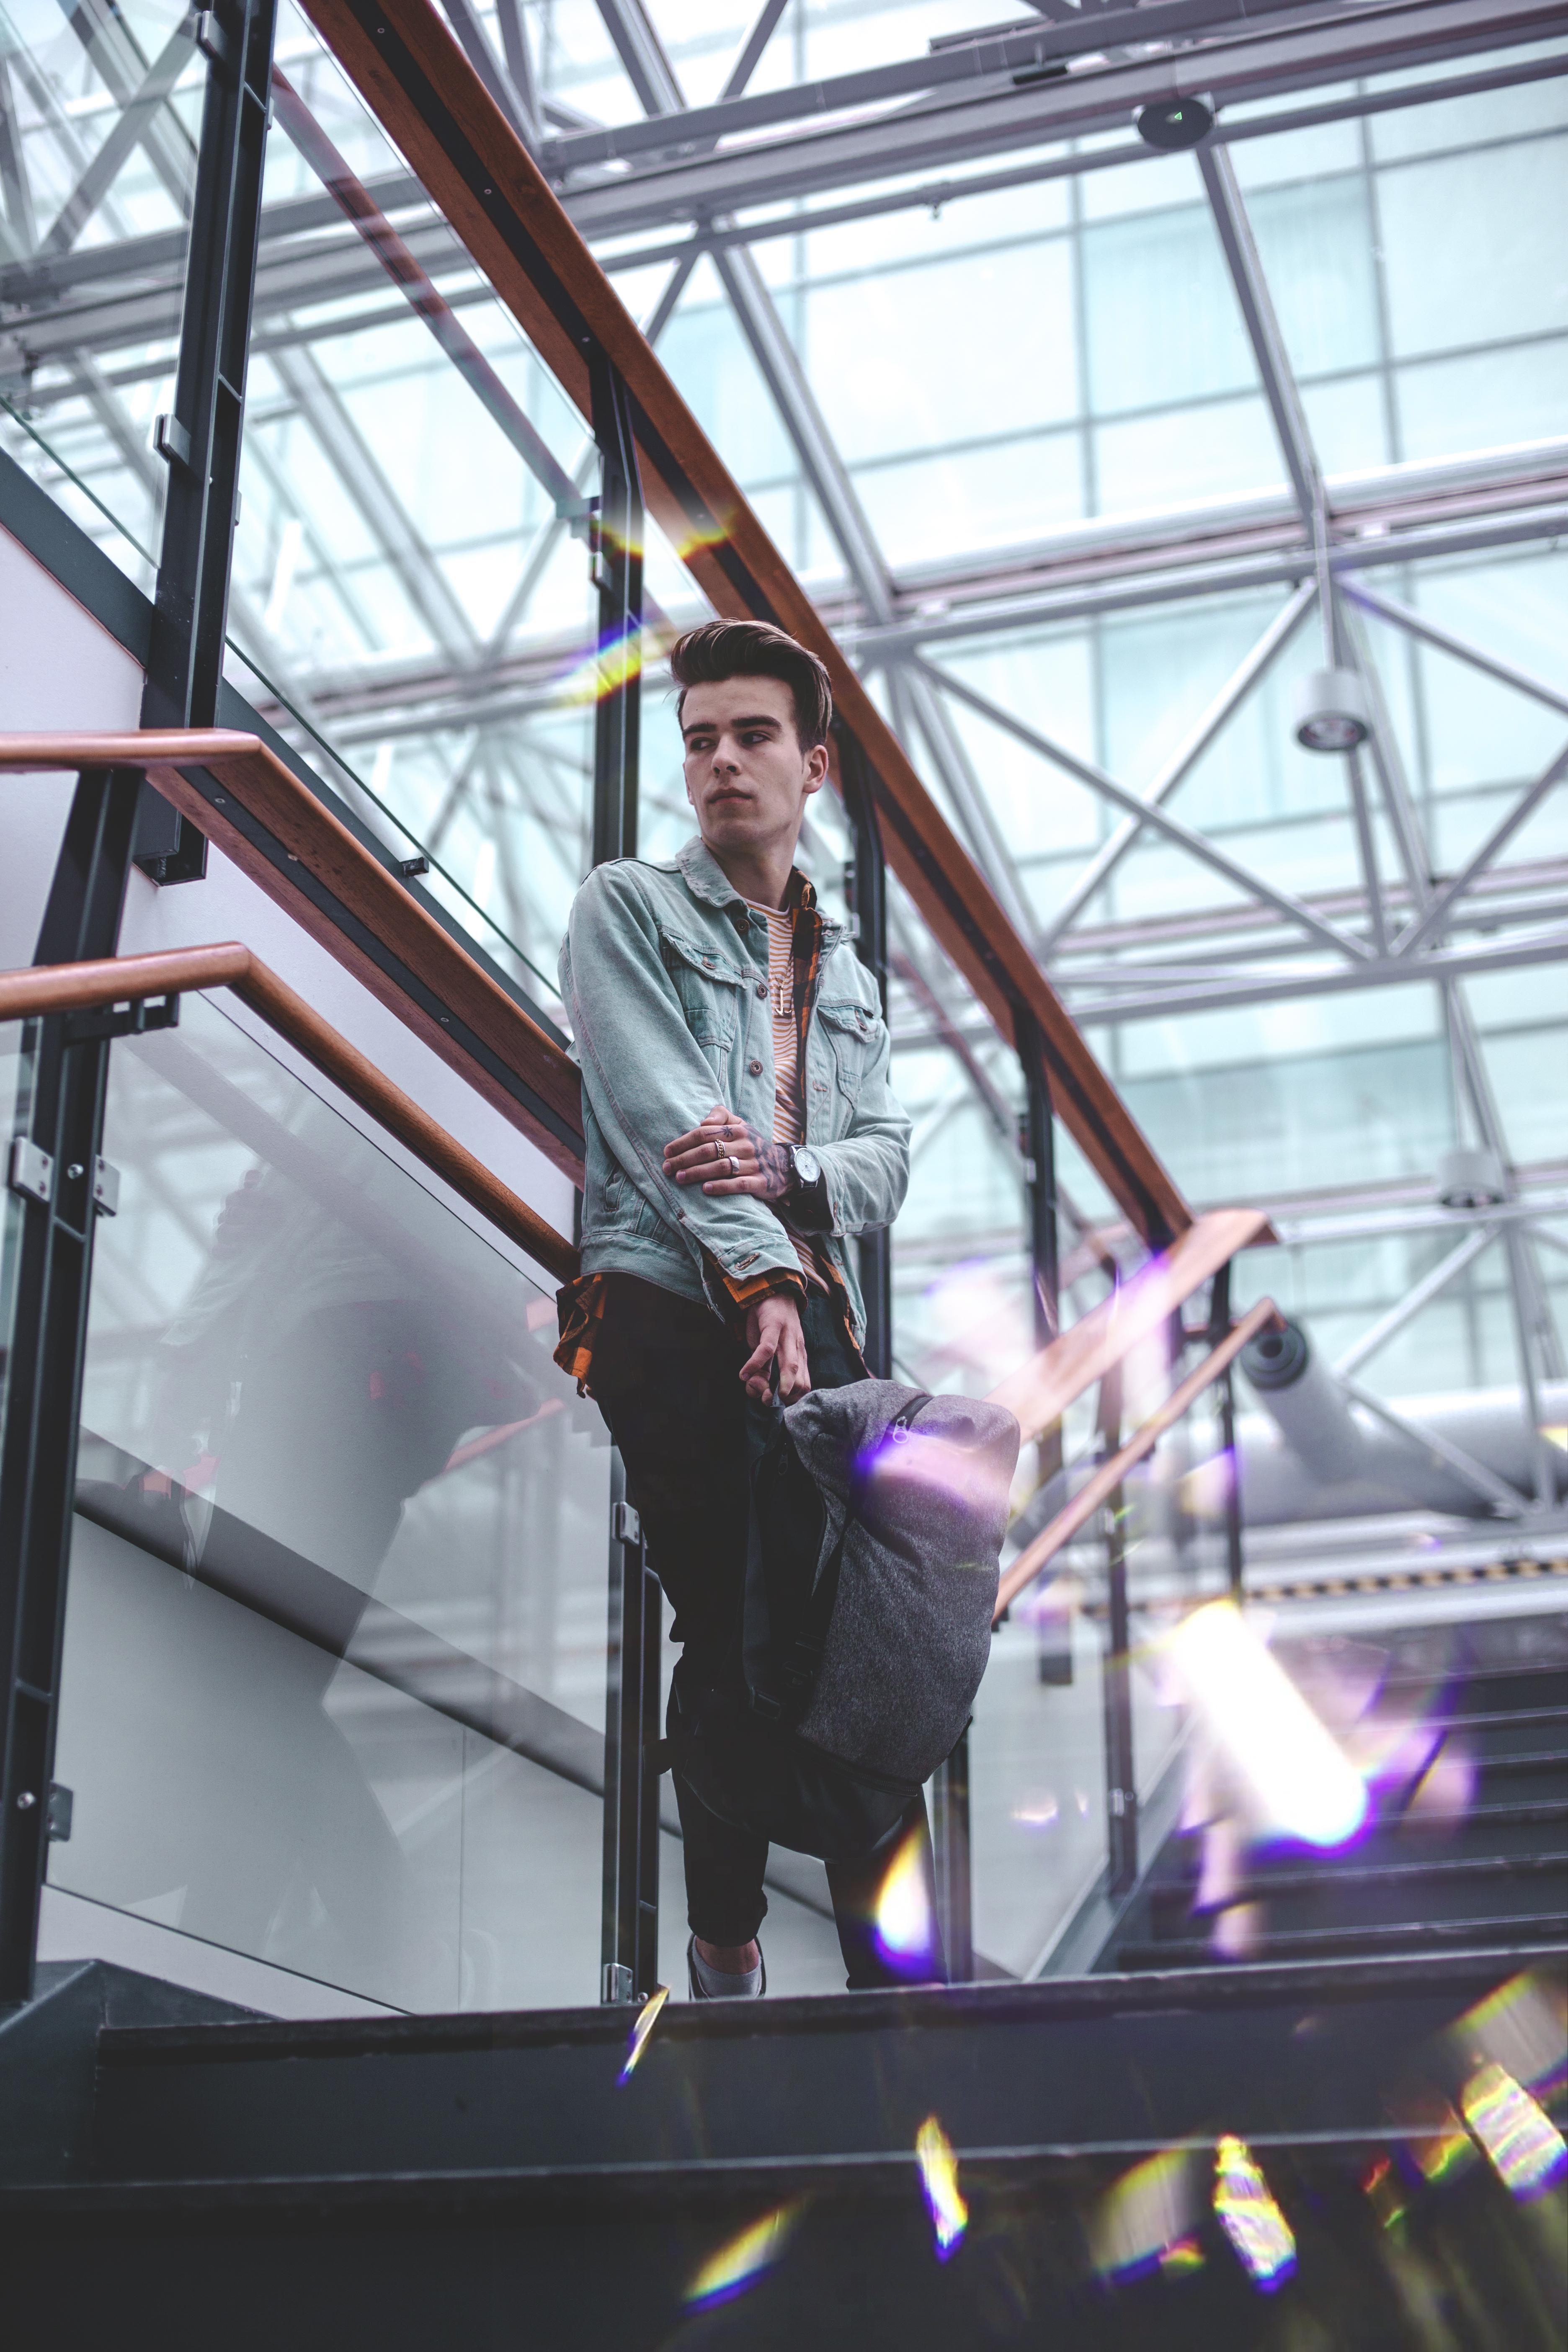 Man in Blue Jacket Standing on Stairs